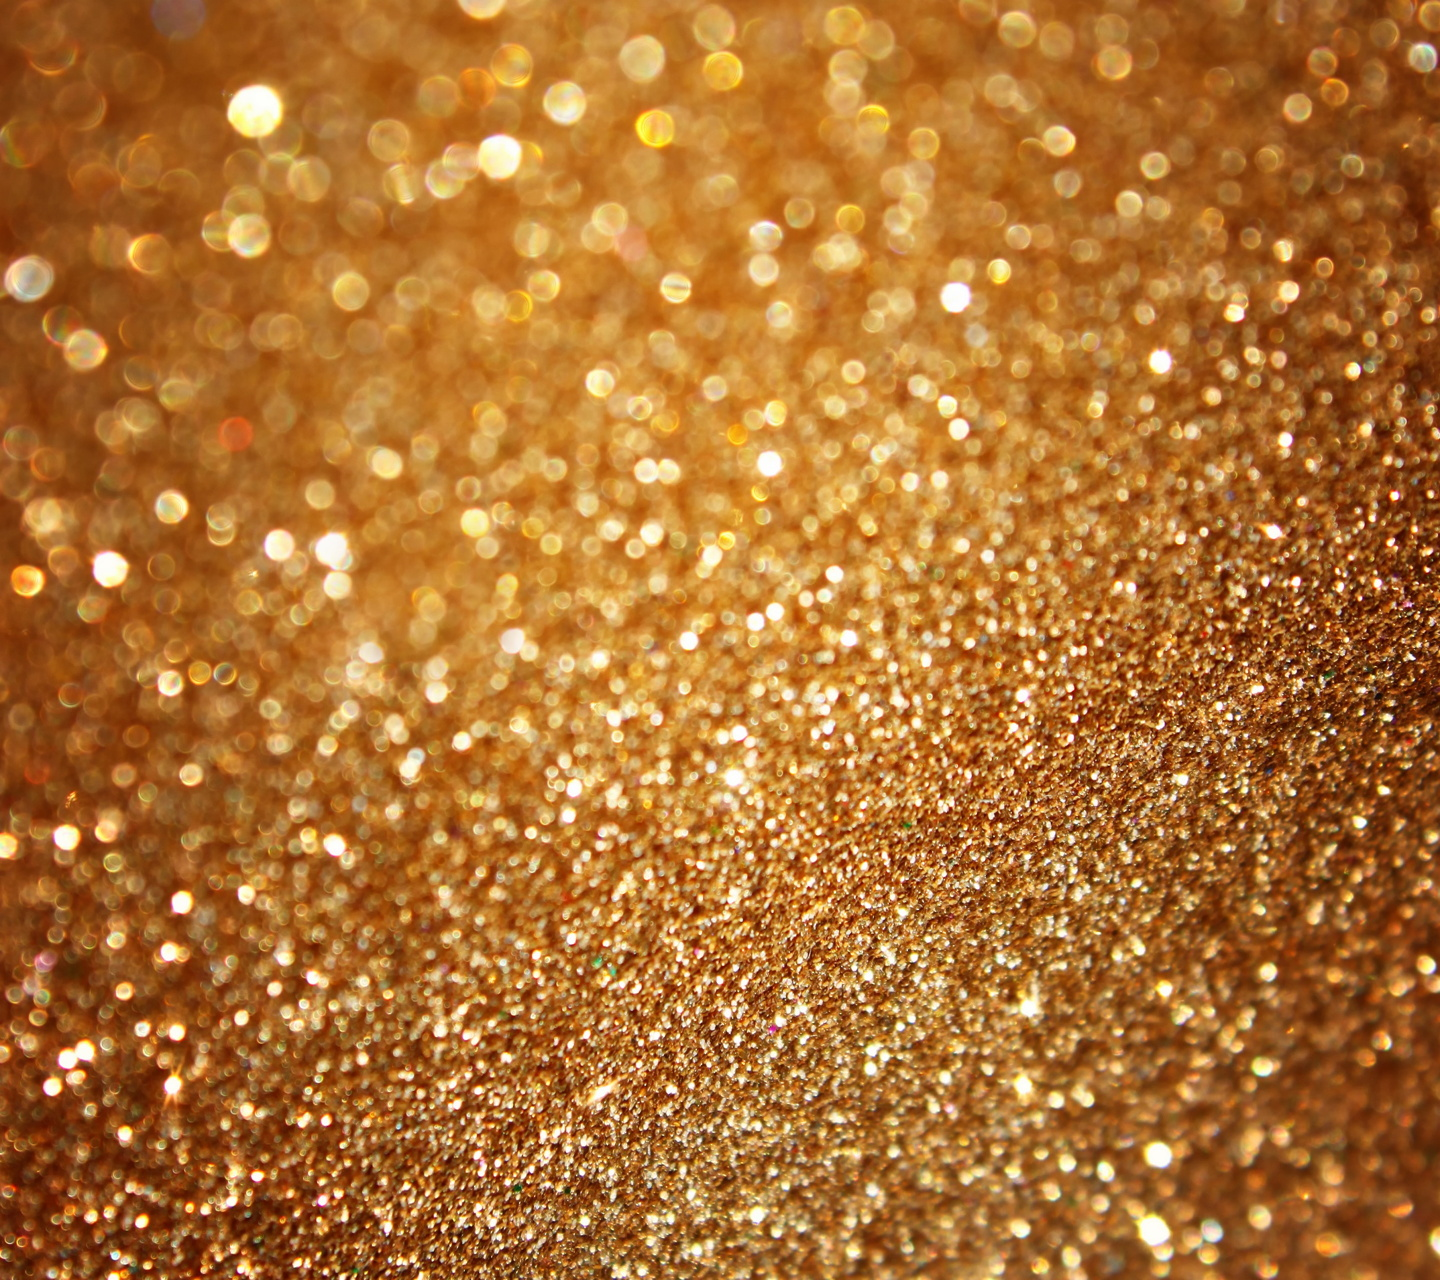 gold dust wallpapers high quality download free. Black Bedroom Furniture Sets. Home Design Ideas